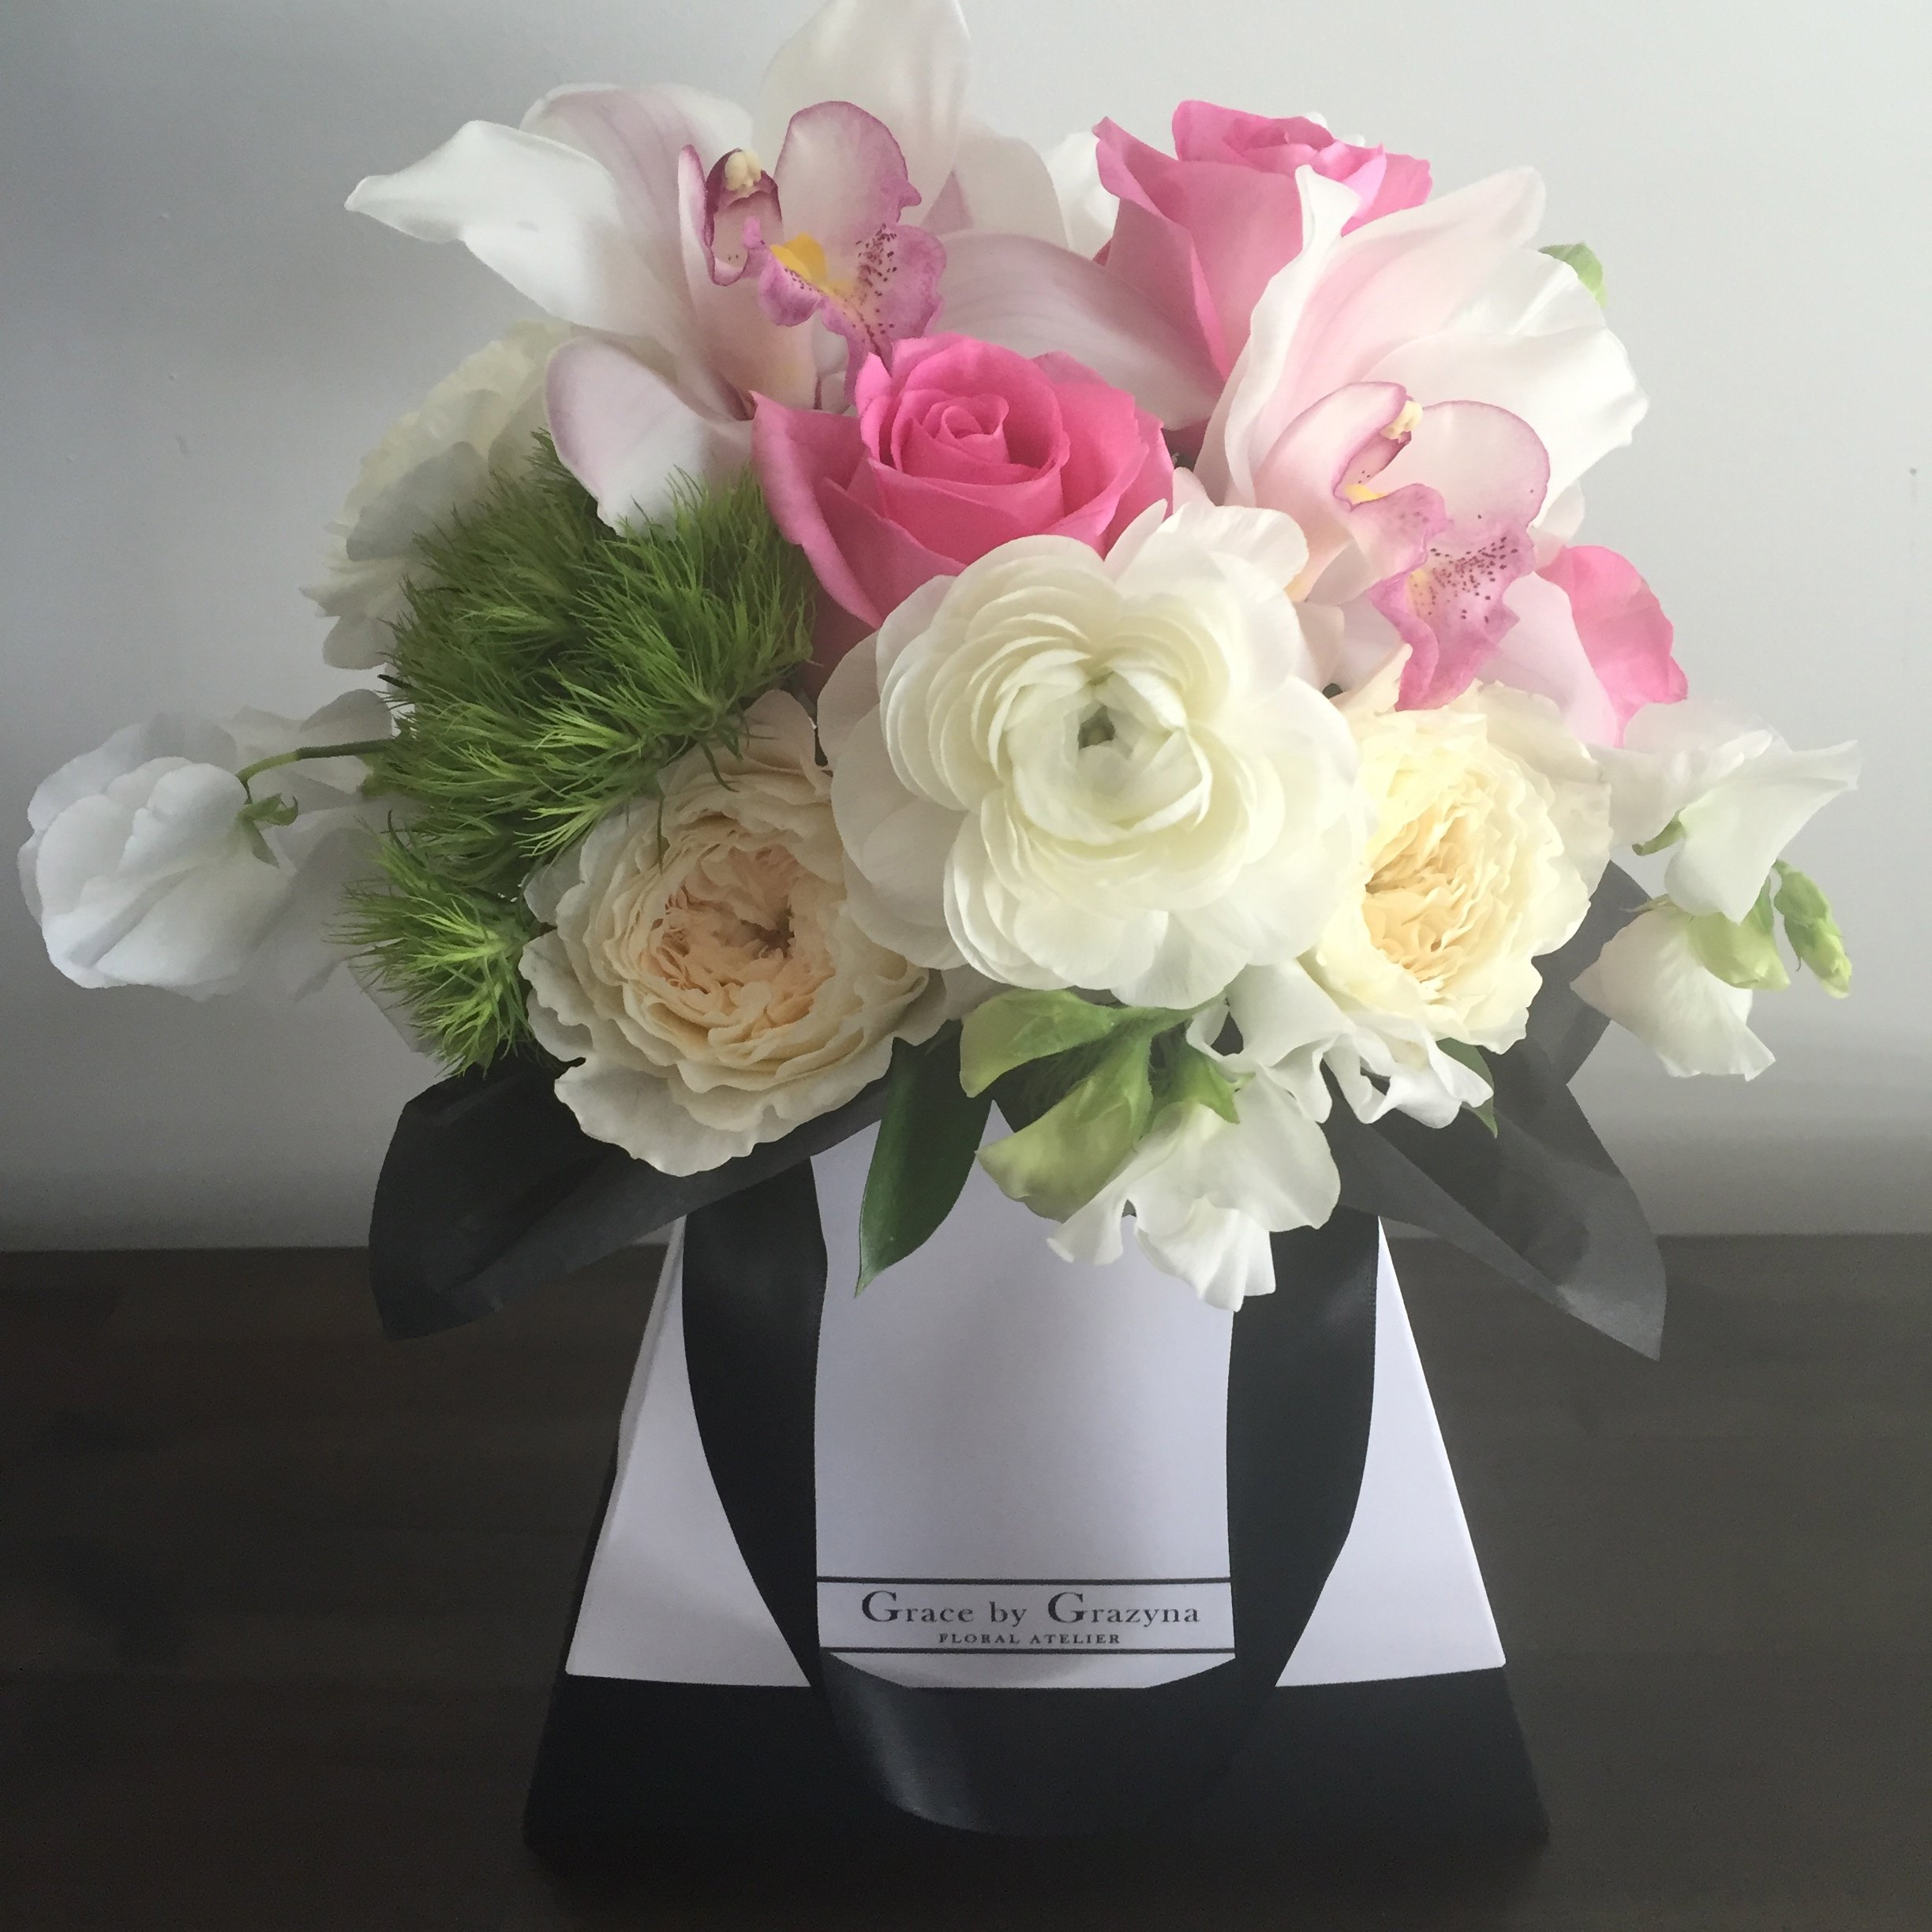 Wedding Gift Delivery Brisbane : Champagne And Flowers Delivery BrisbaneThe Best Flowers Ideas